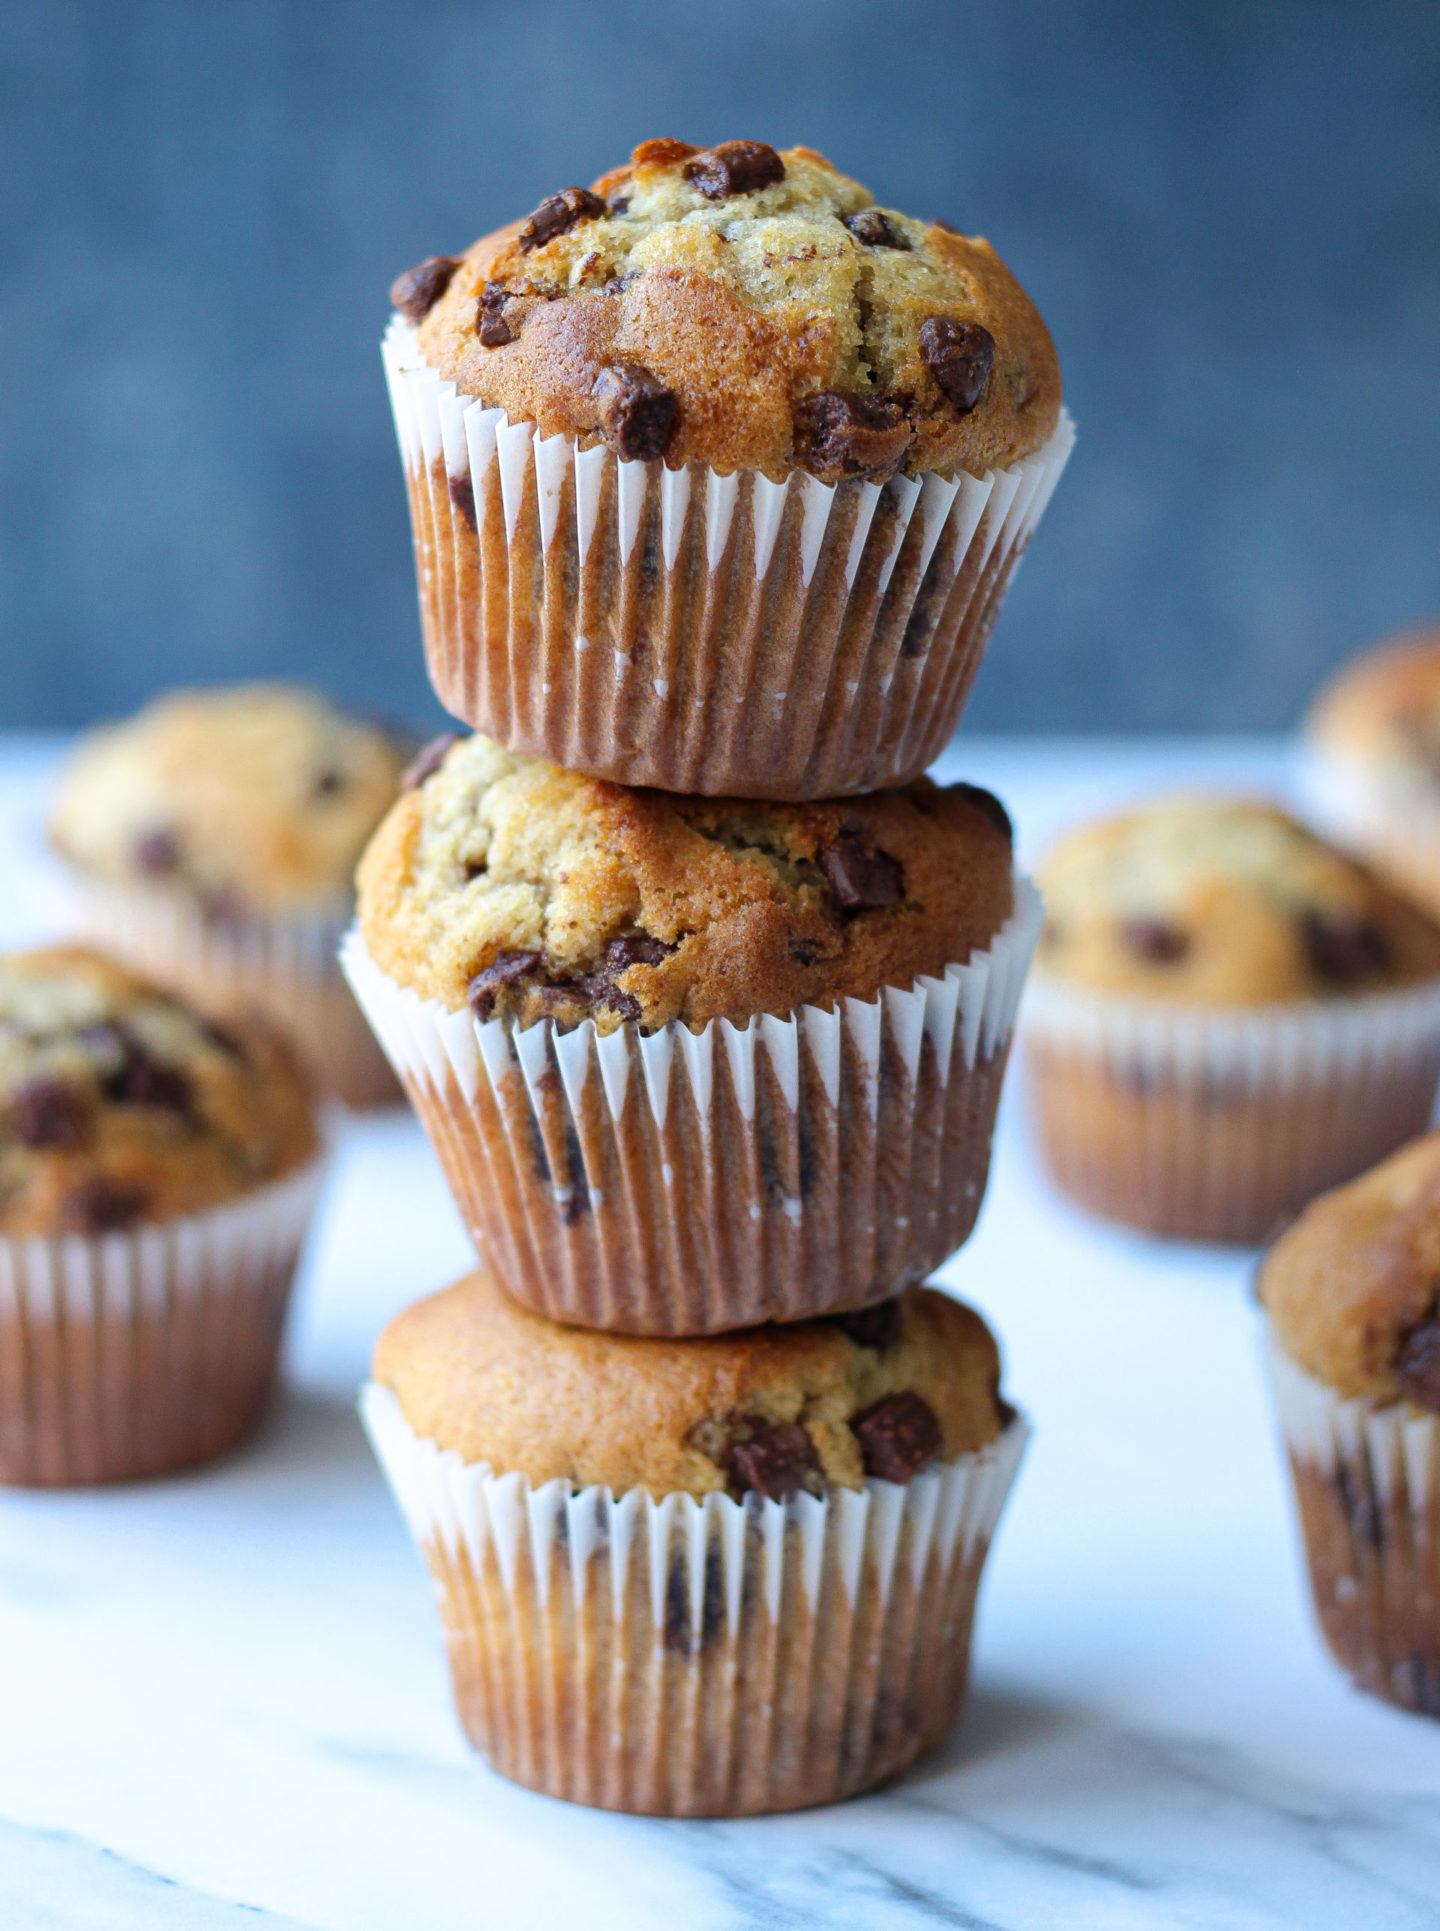 tower of three chocolate chip muffins